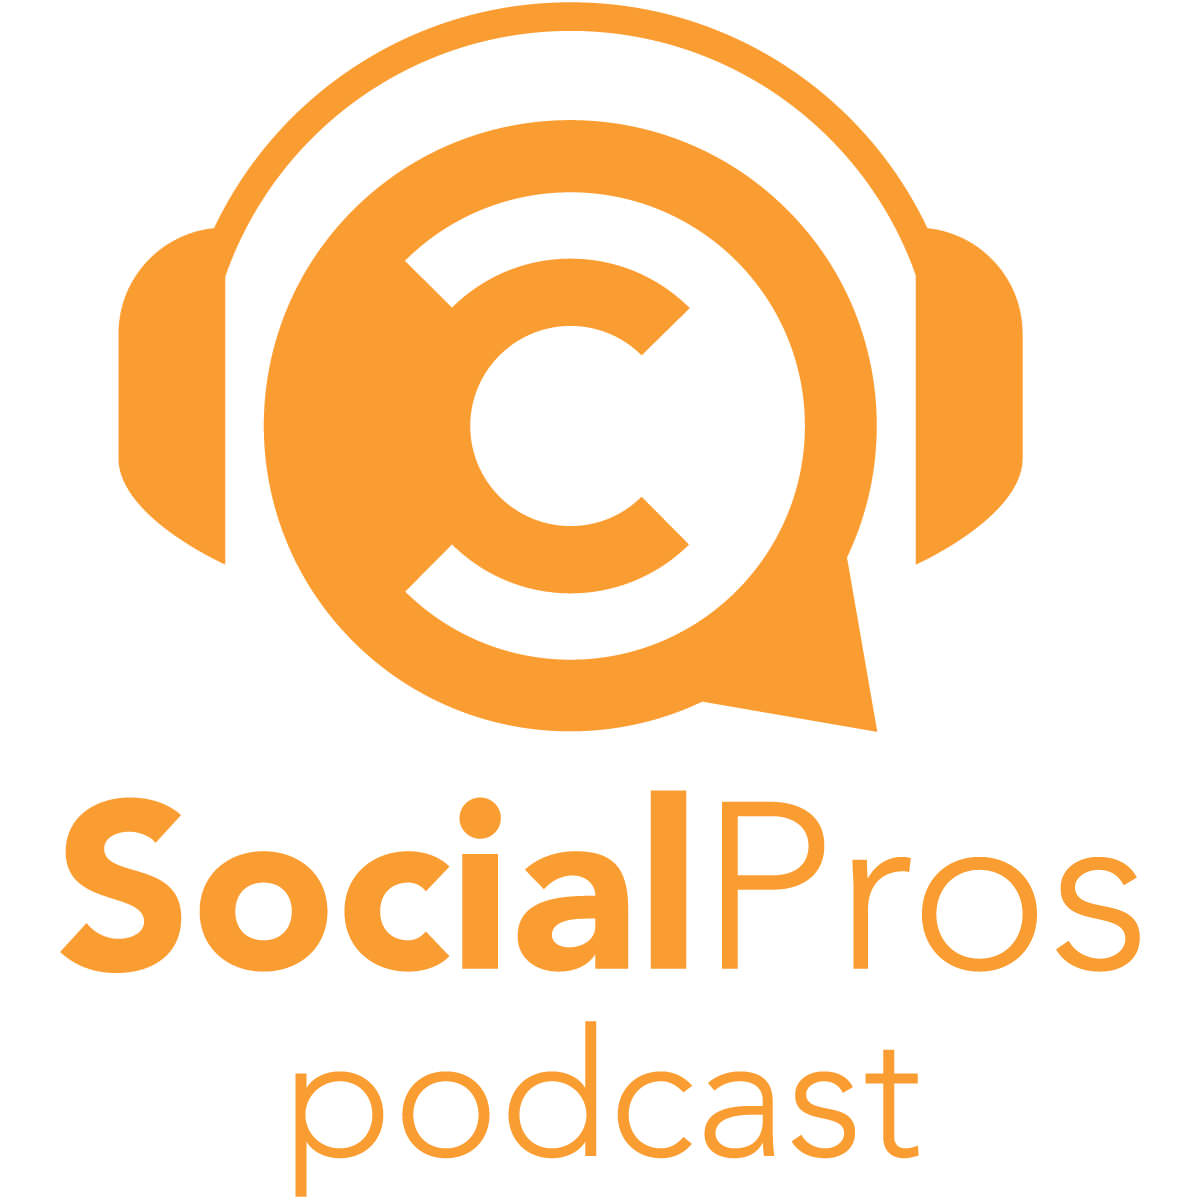 social pros icon Social Success Comes from Individuality